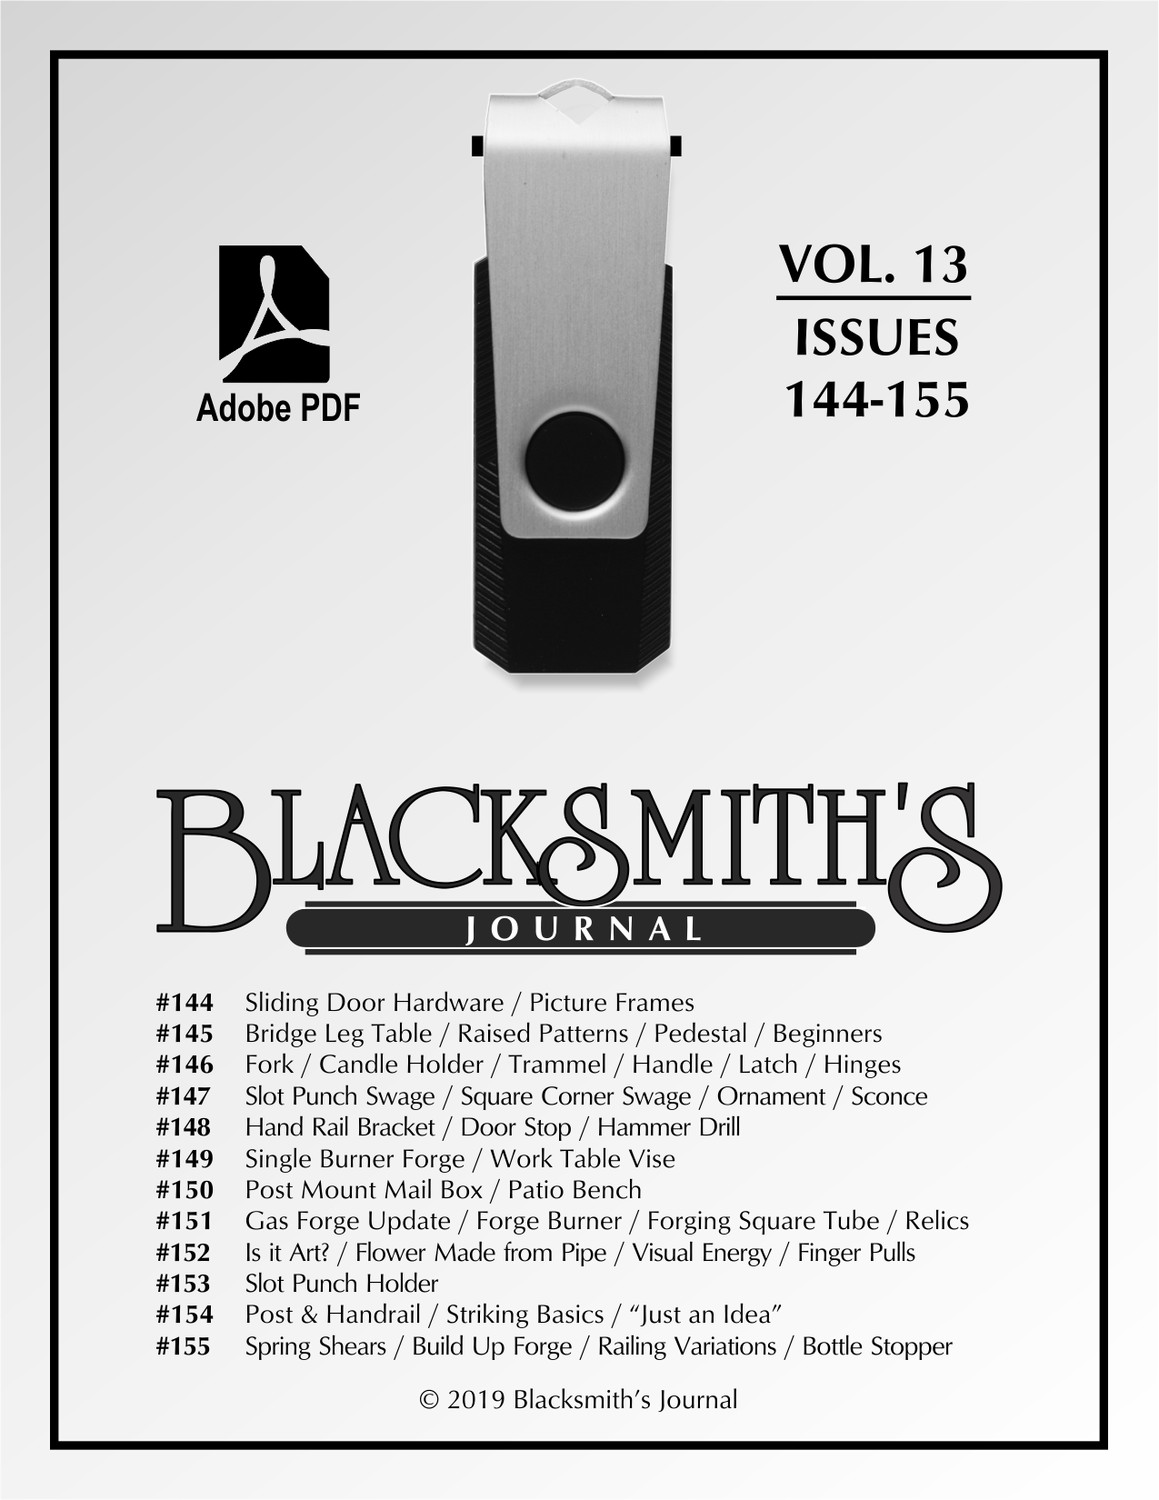 USB Flash Drive - Blacksmith's Journal Vol. 13